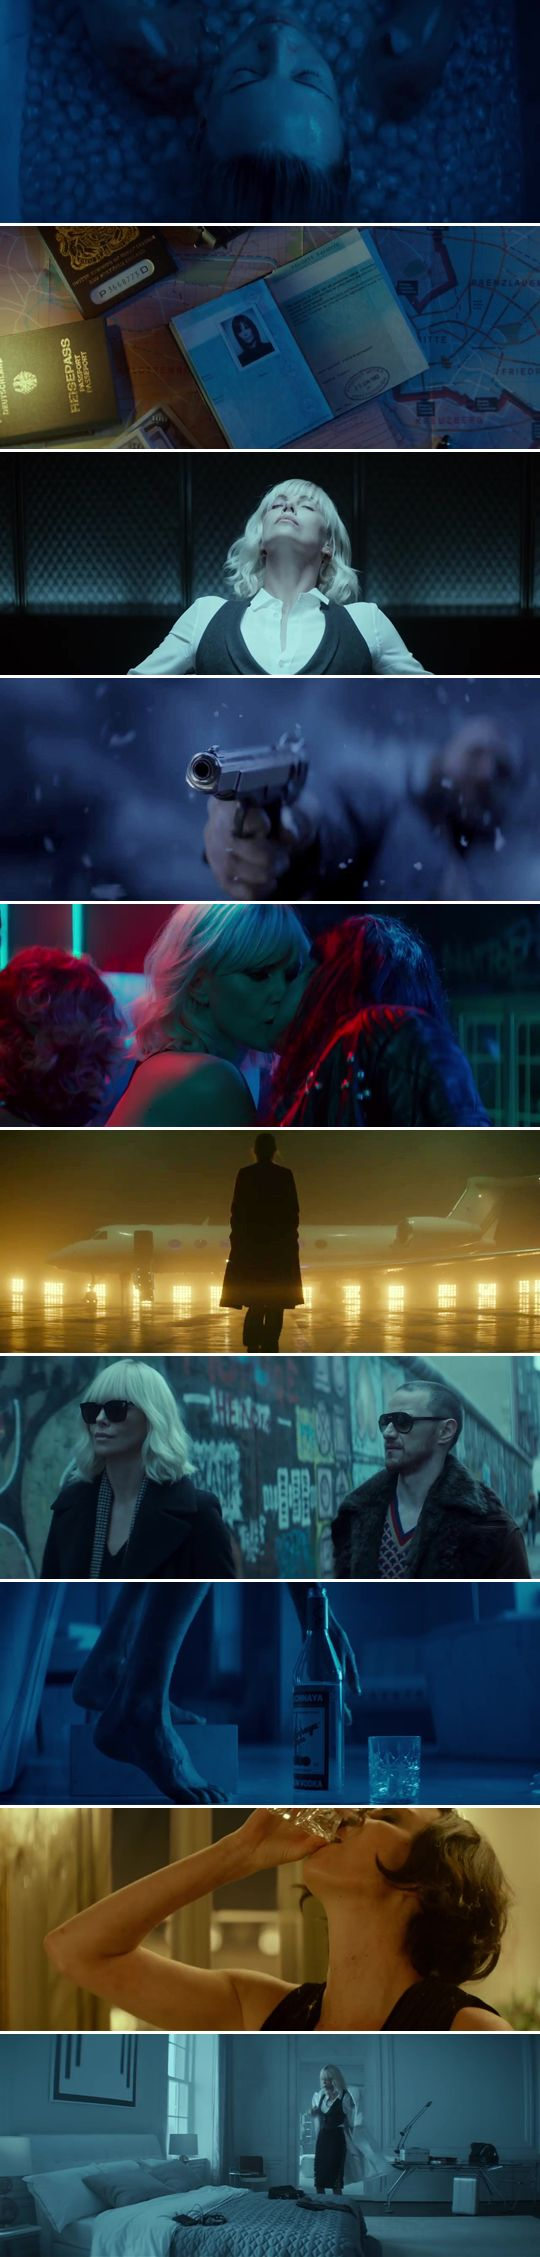 Atomic Blonde (2017), dir. David Leitch